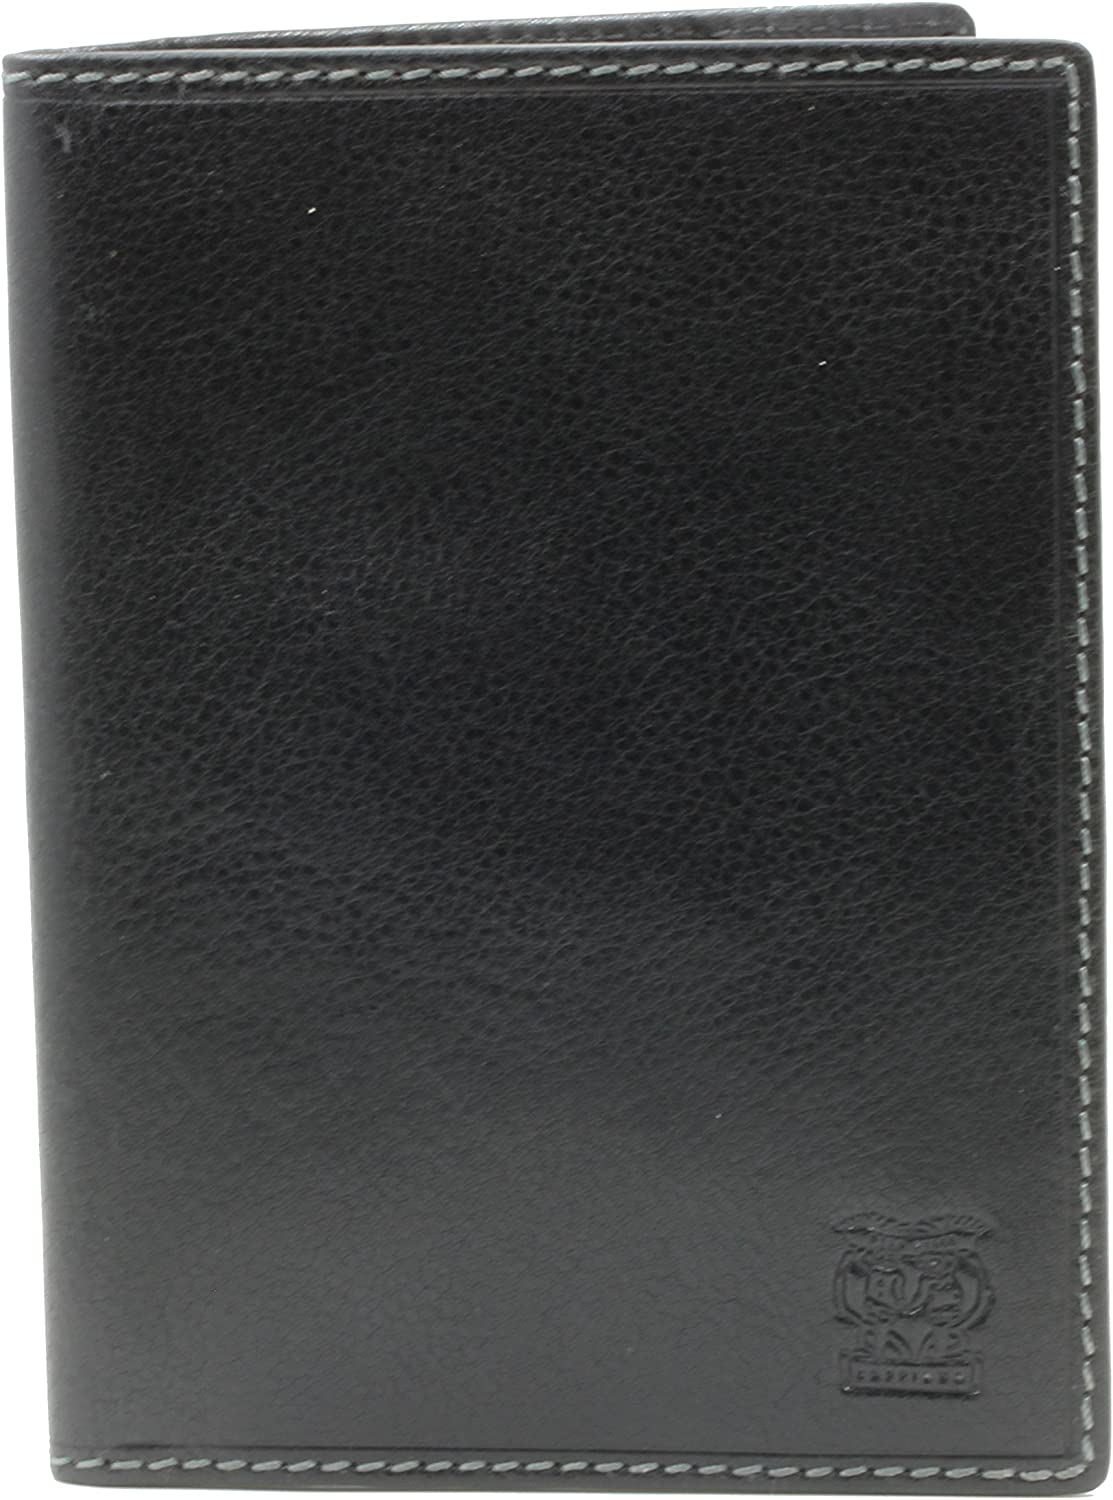 CAPPIANO Mens Trust Genuine Leather Minimalist Slim Travel Wallet 2021 spring and summer new Pa